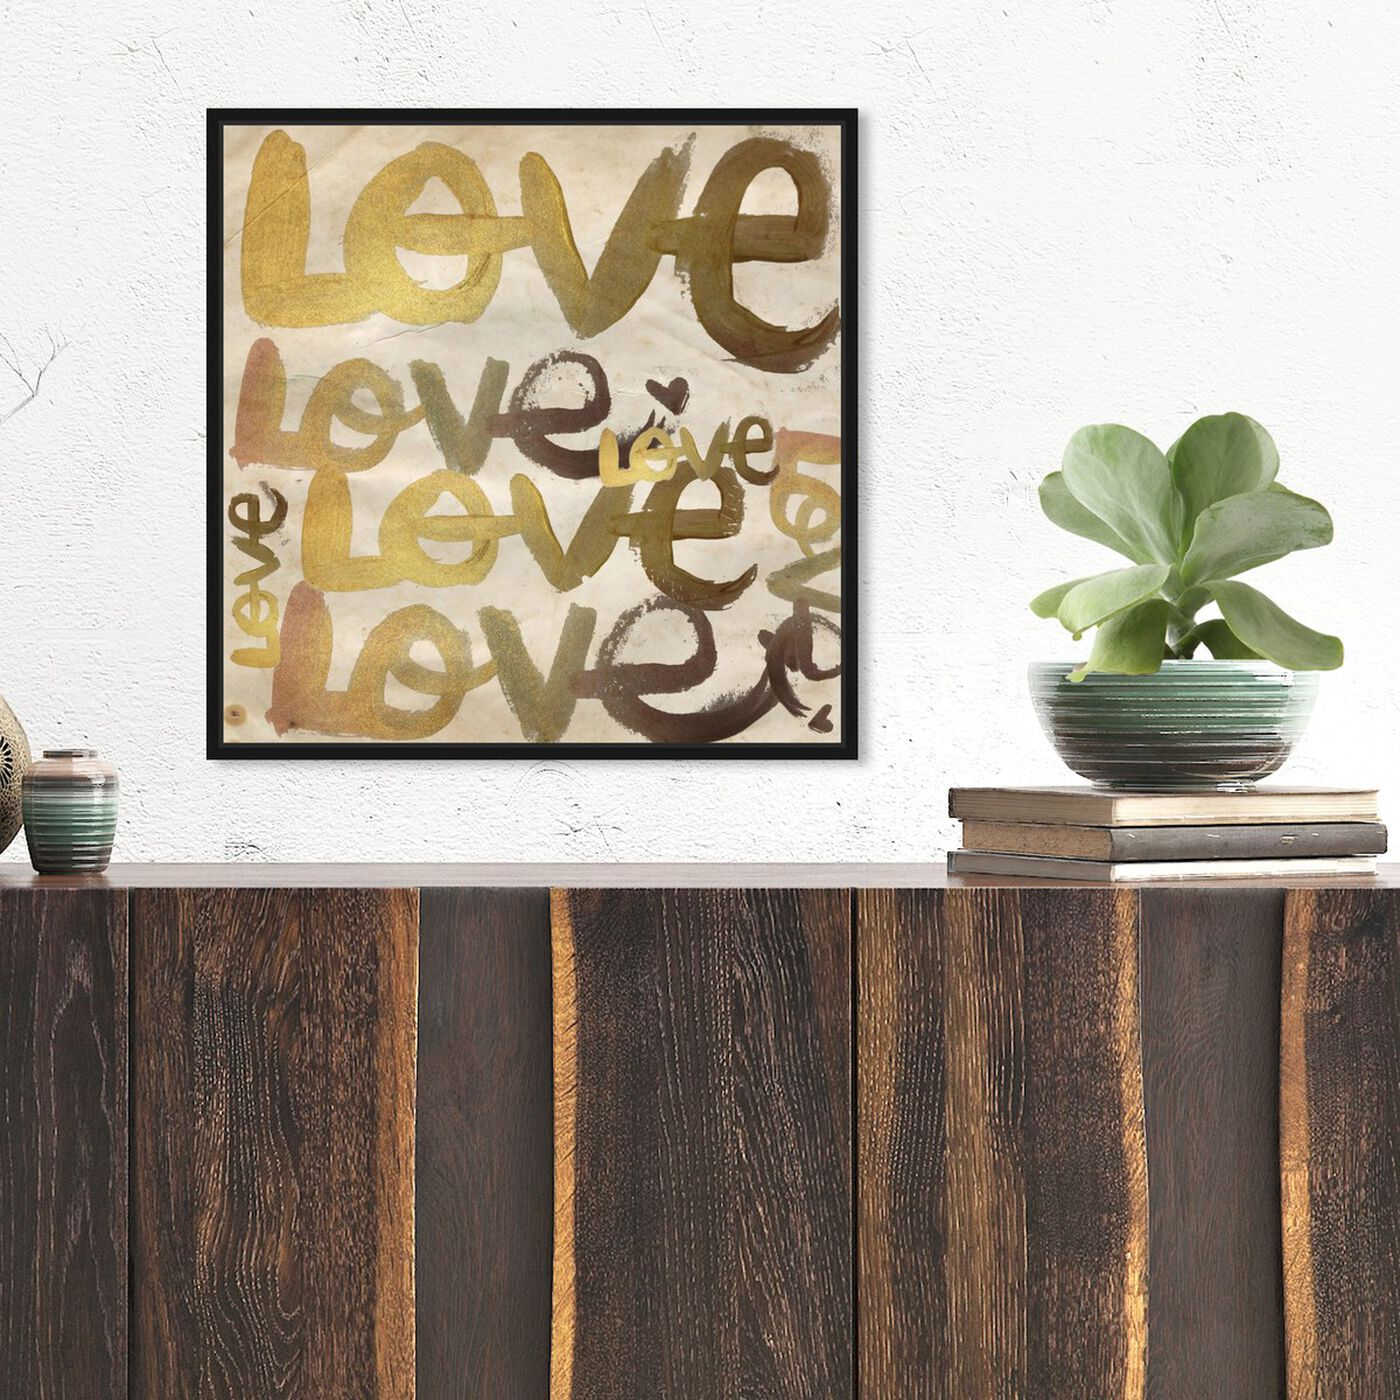 Hanging view of Four Letter Word featuring typography and quotes and love quotes and sayings art.